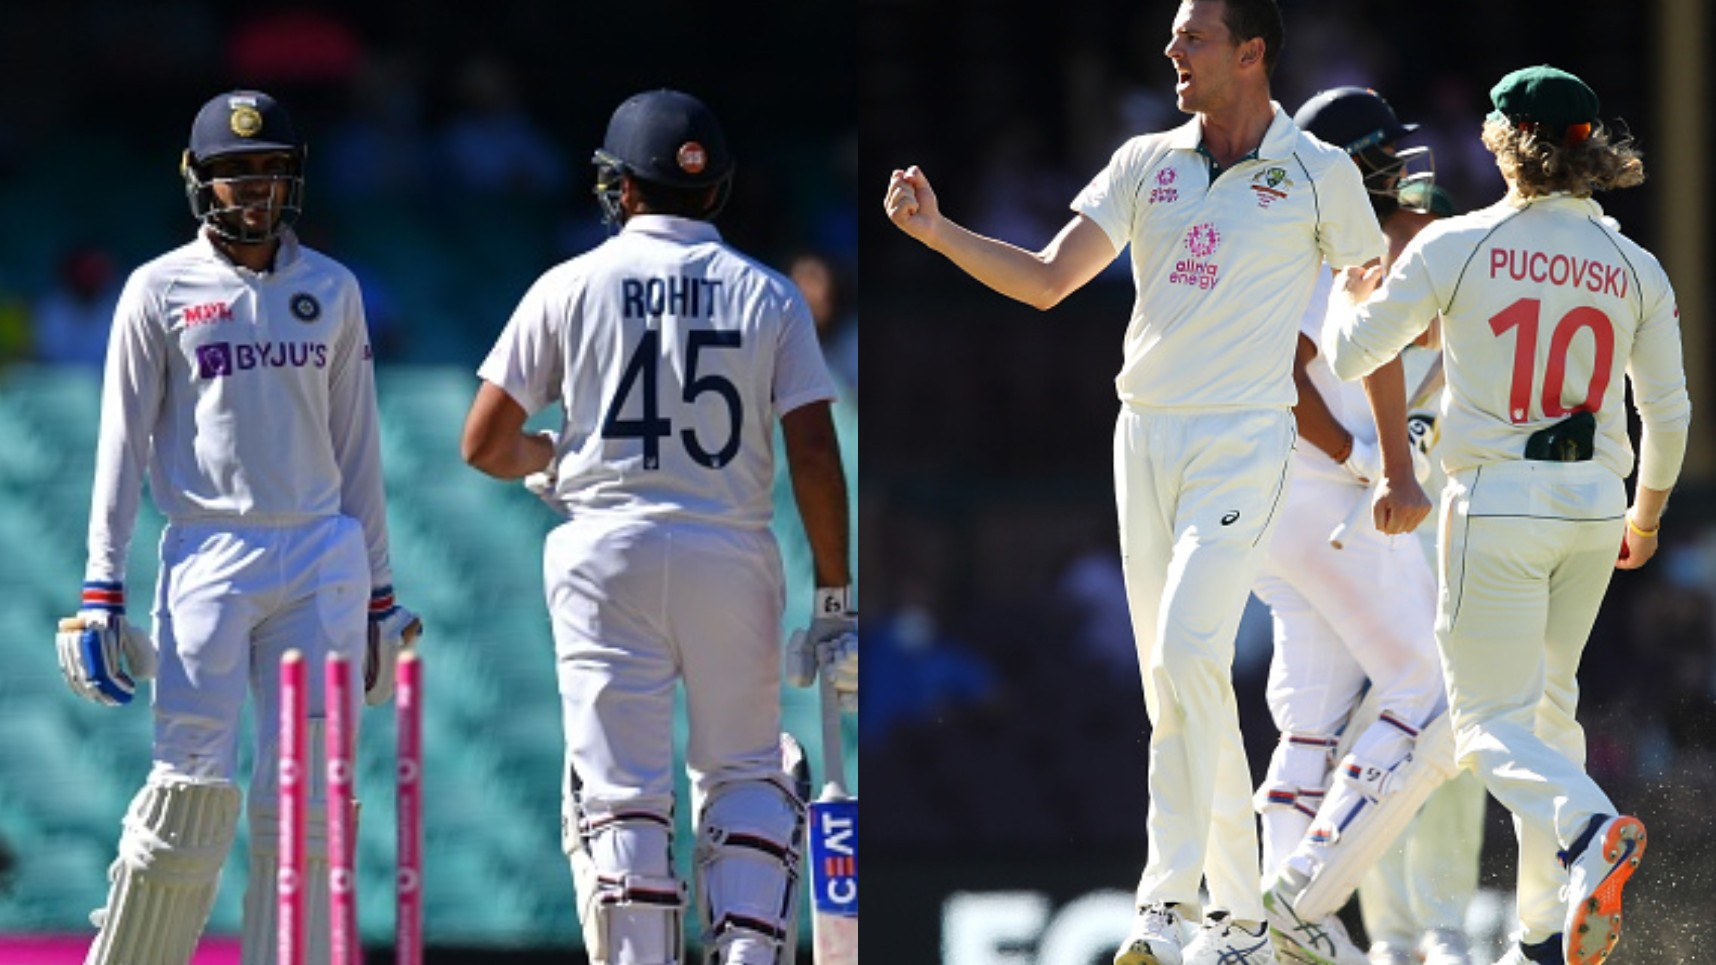 AUS v IND 2020-21: Rohit-Gill give India a head start with 309 more runs needed on day 5; Australia still favorites